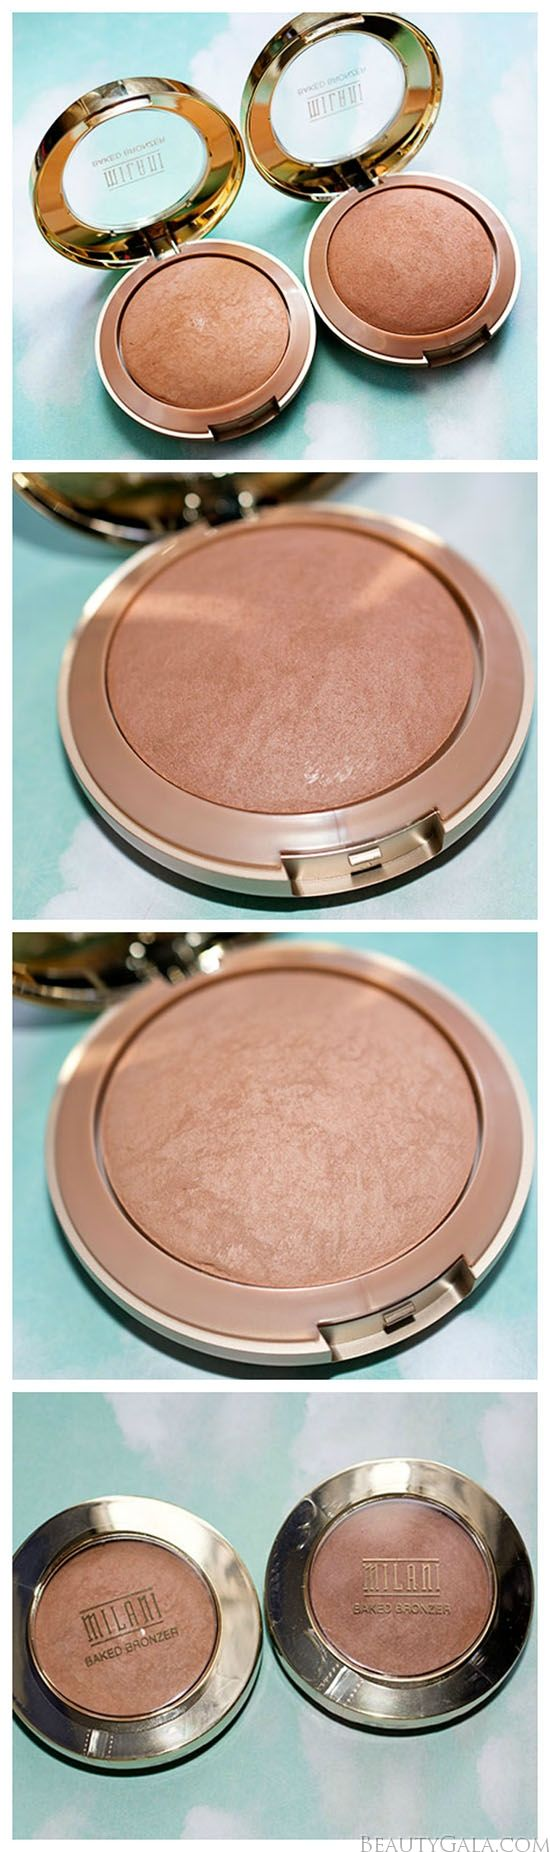 Limited edition, MATTE Milani Bronzers for Summer 2014. Affordable and pigmented! @Milani Cosmetics